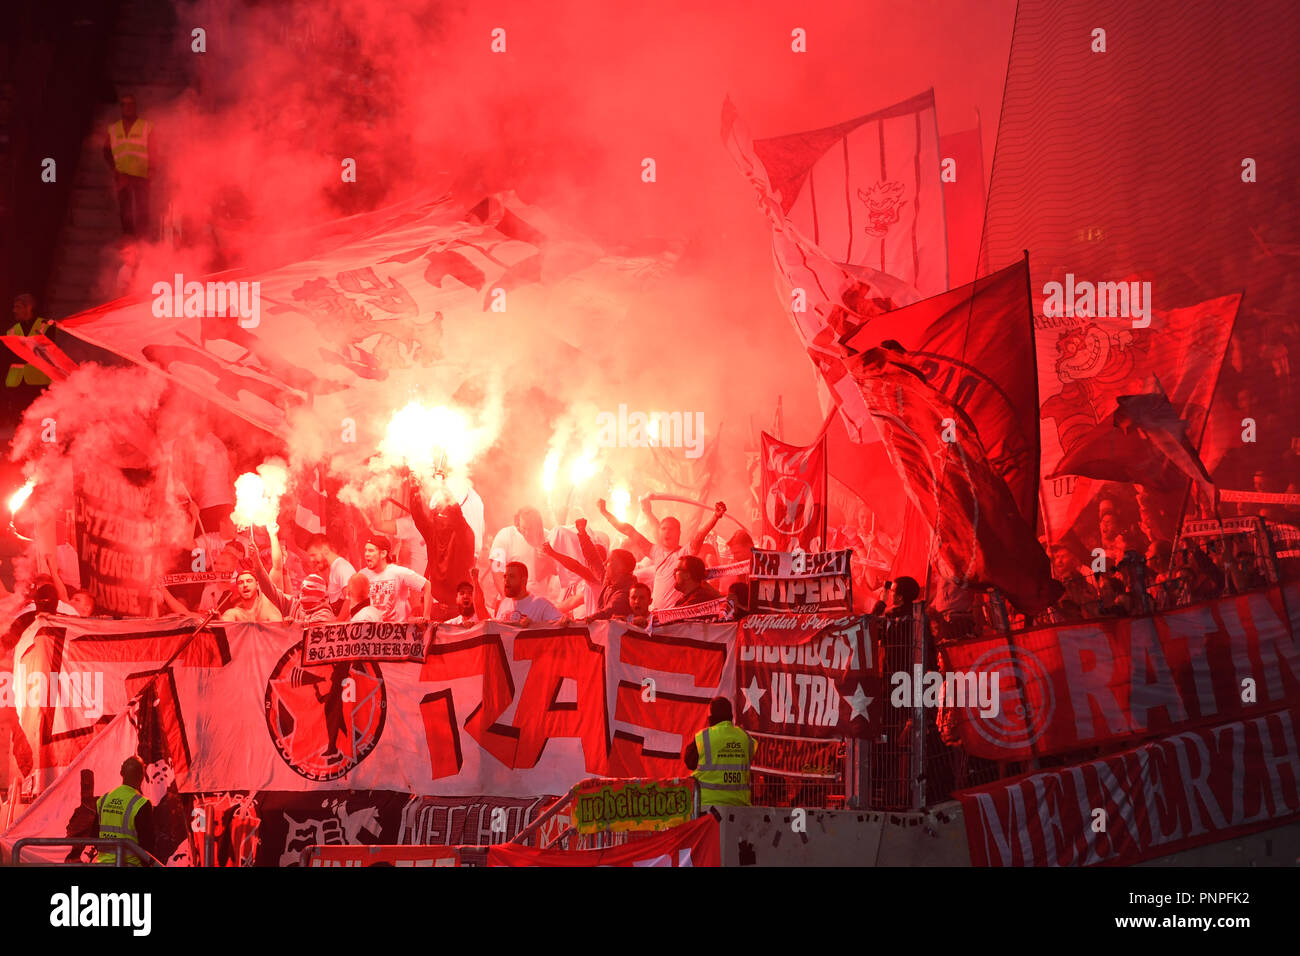 Tifo Bengalo Soccer Ball Flames Immagini Soccer Ball Flames Fotos Stock Alamy